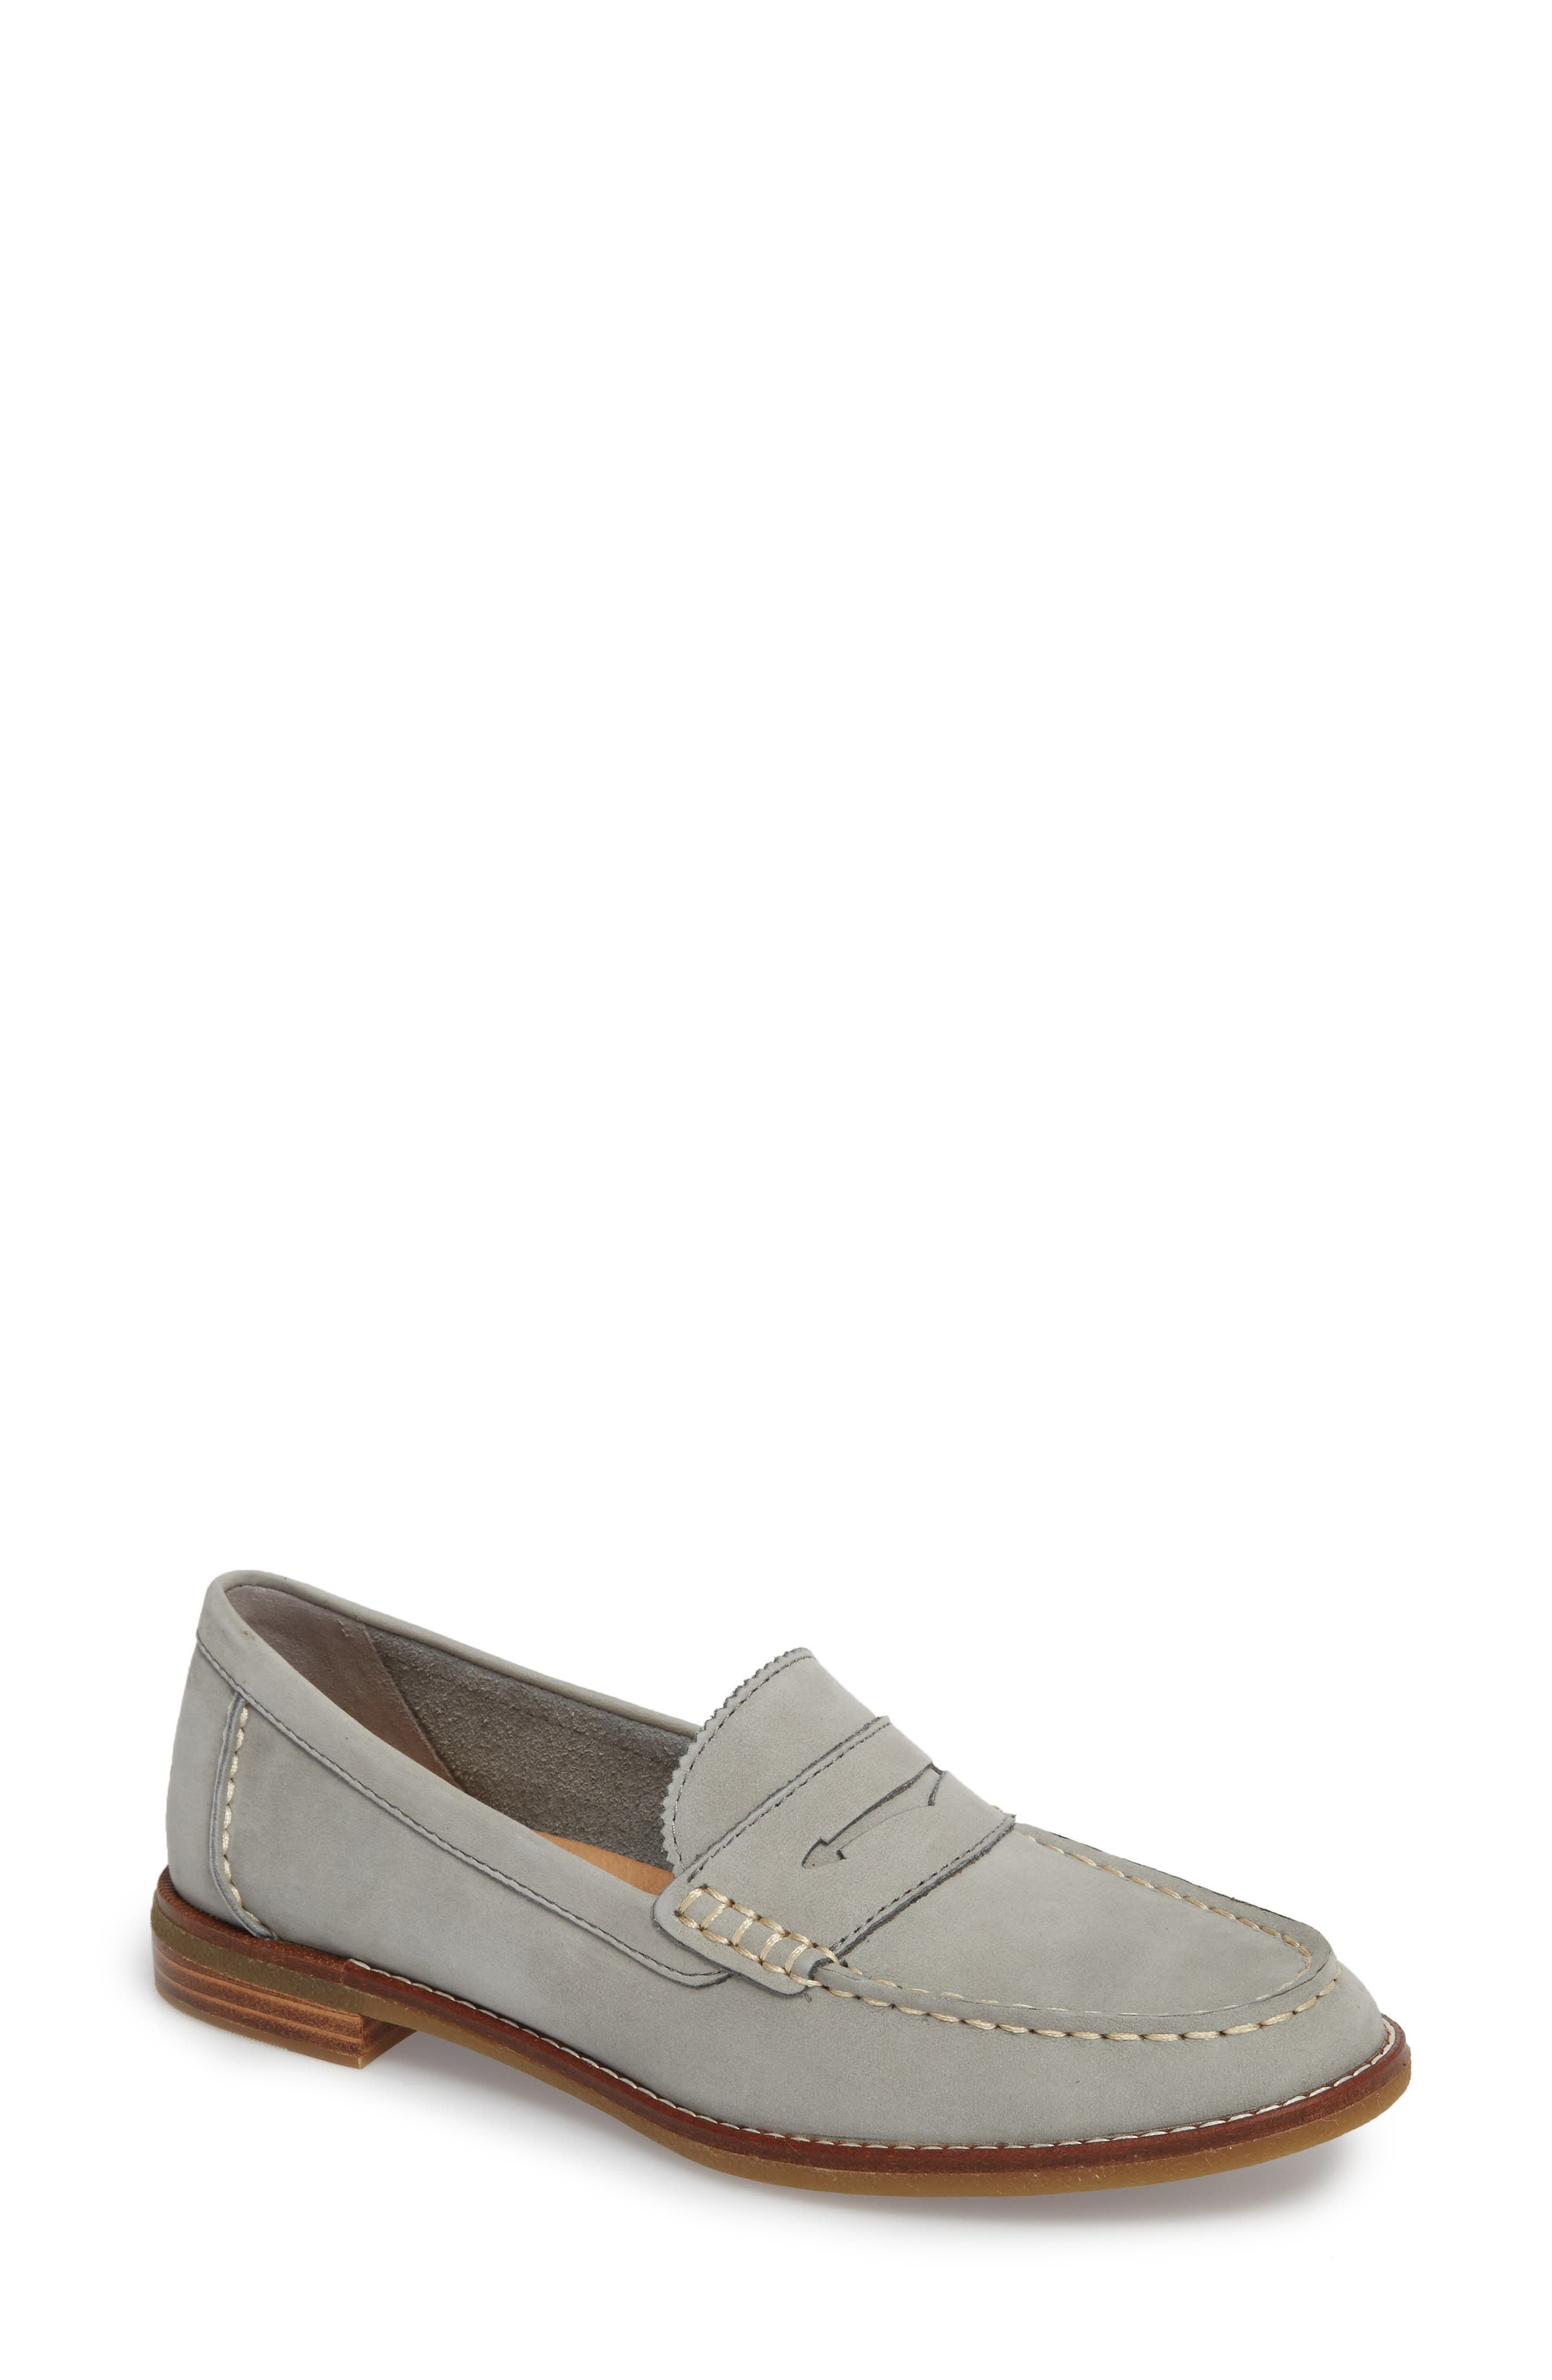 SPERRY, Seaport Penny Loafer, Main thumbnail 1, color, GREY LEATHER